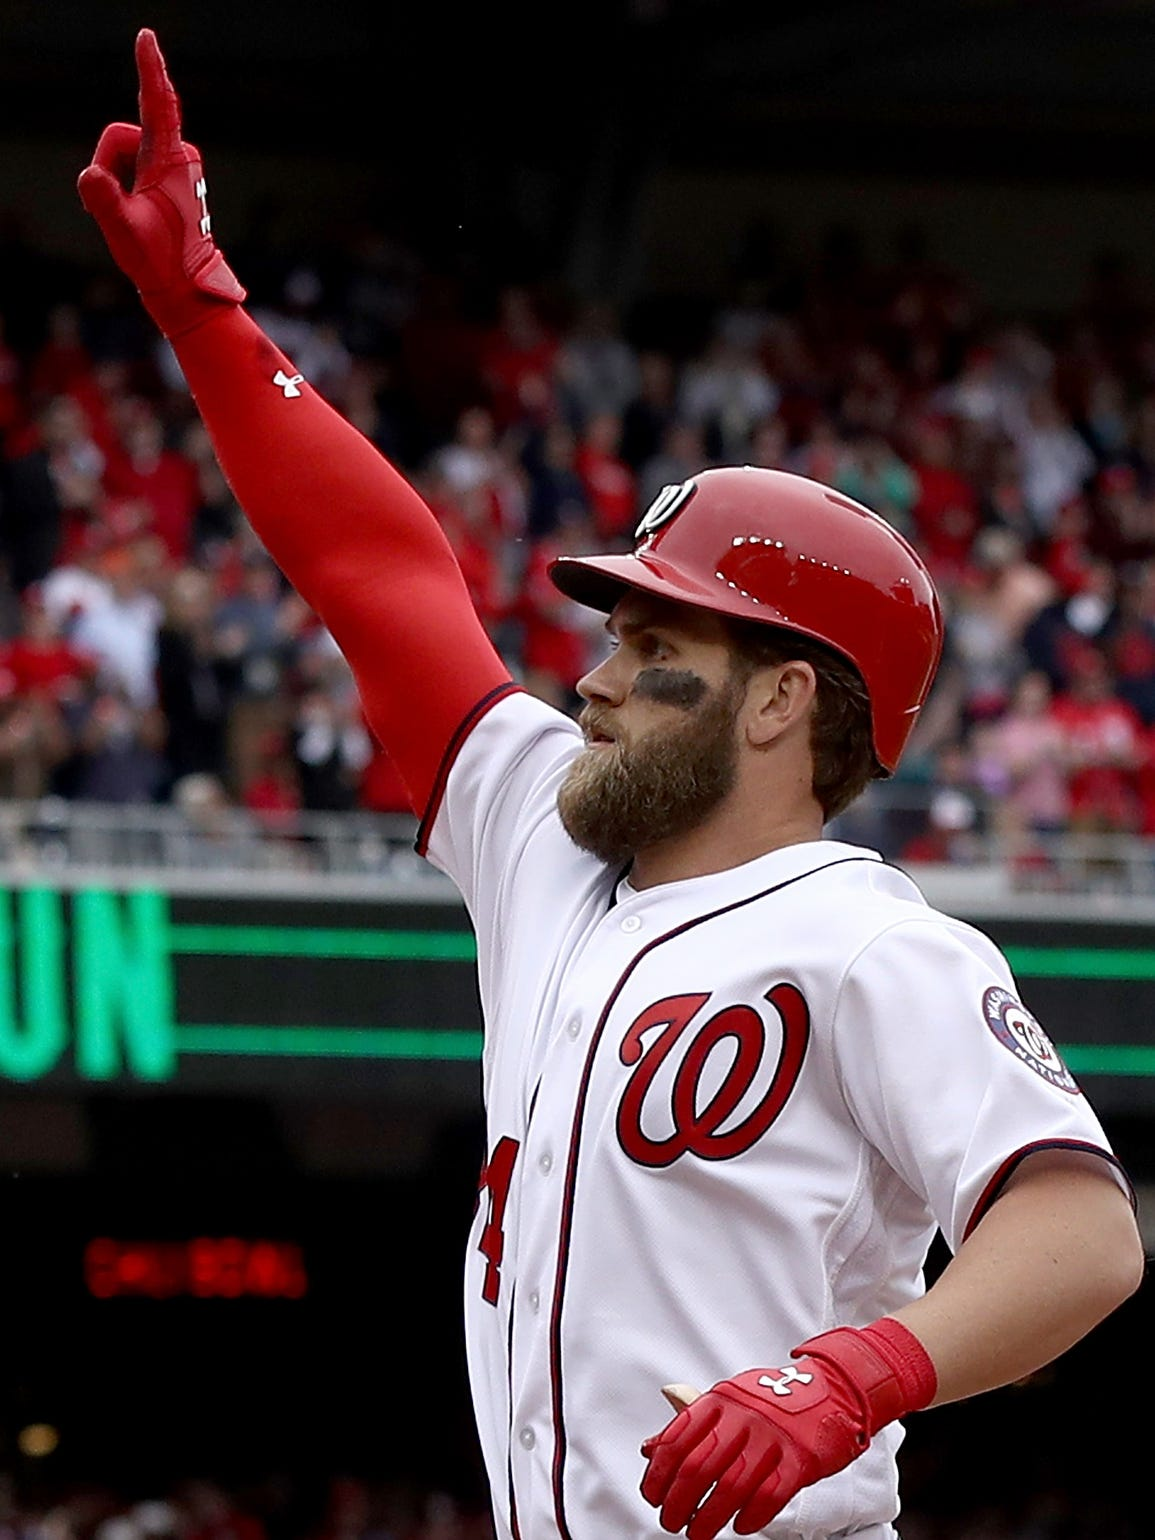 Is 2014 08 sports wagering guidelines that you cana t afford to overlook - Bryce Harper